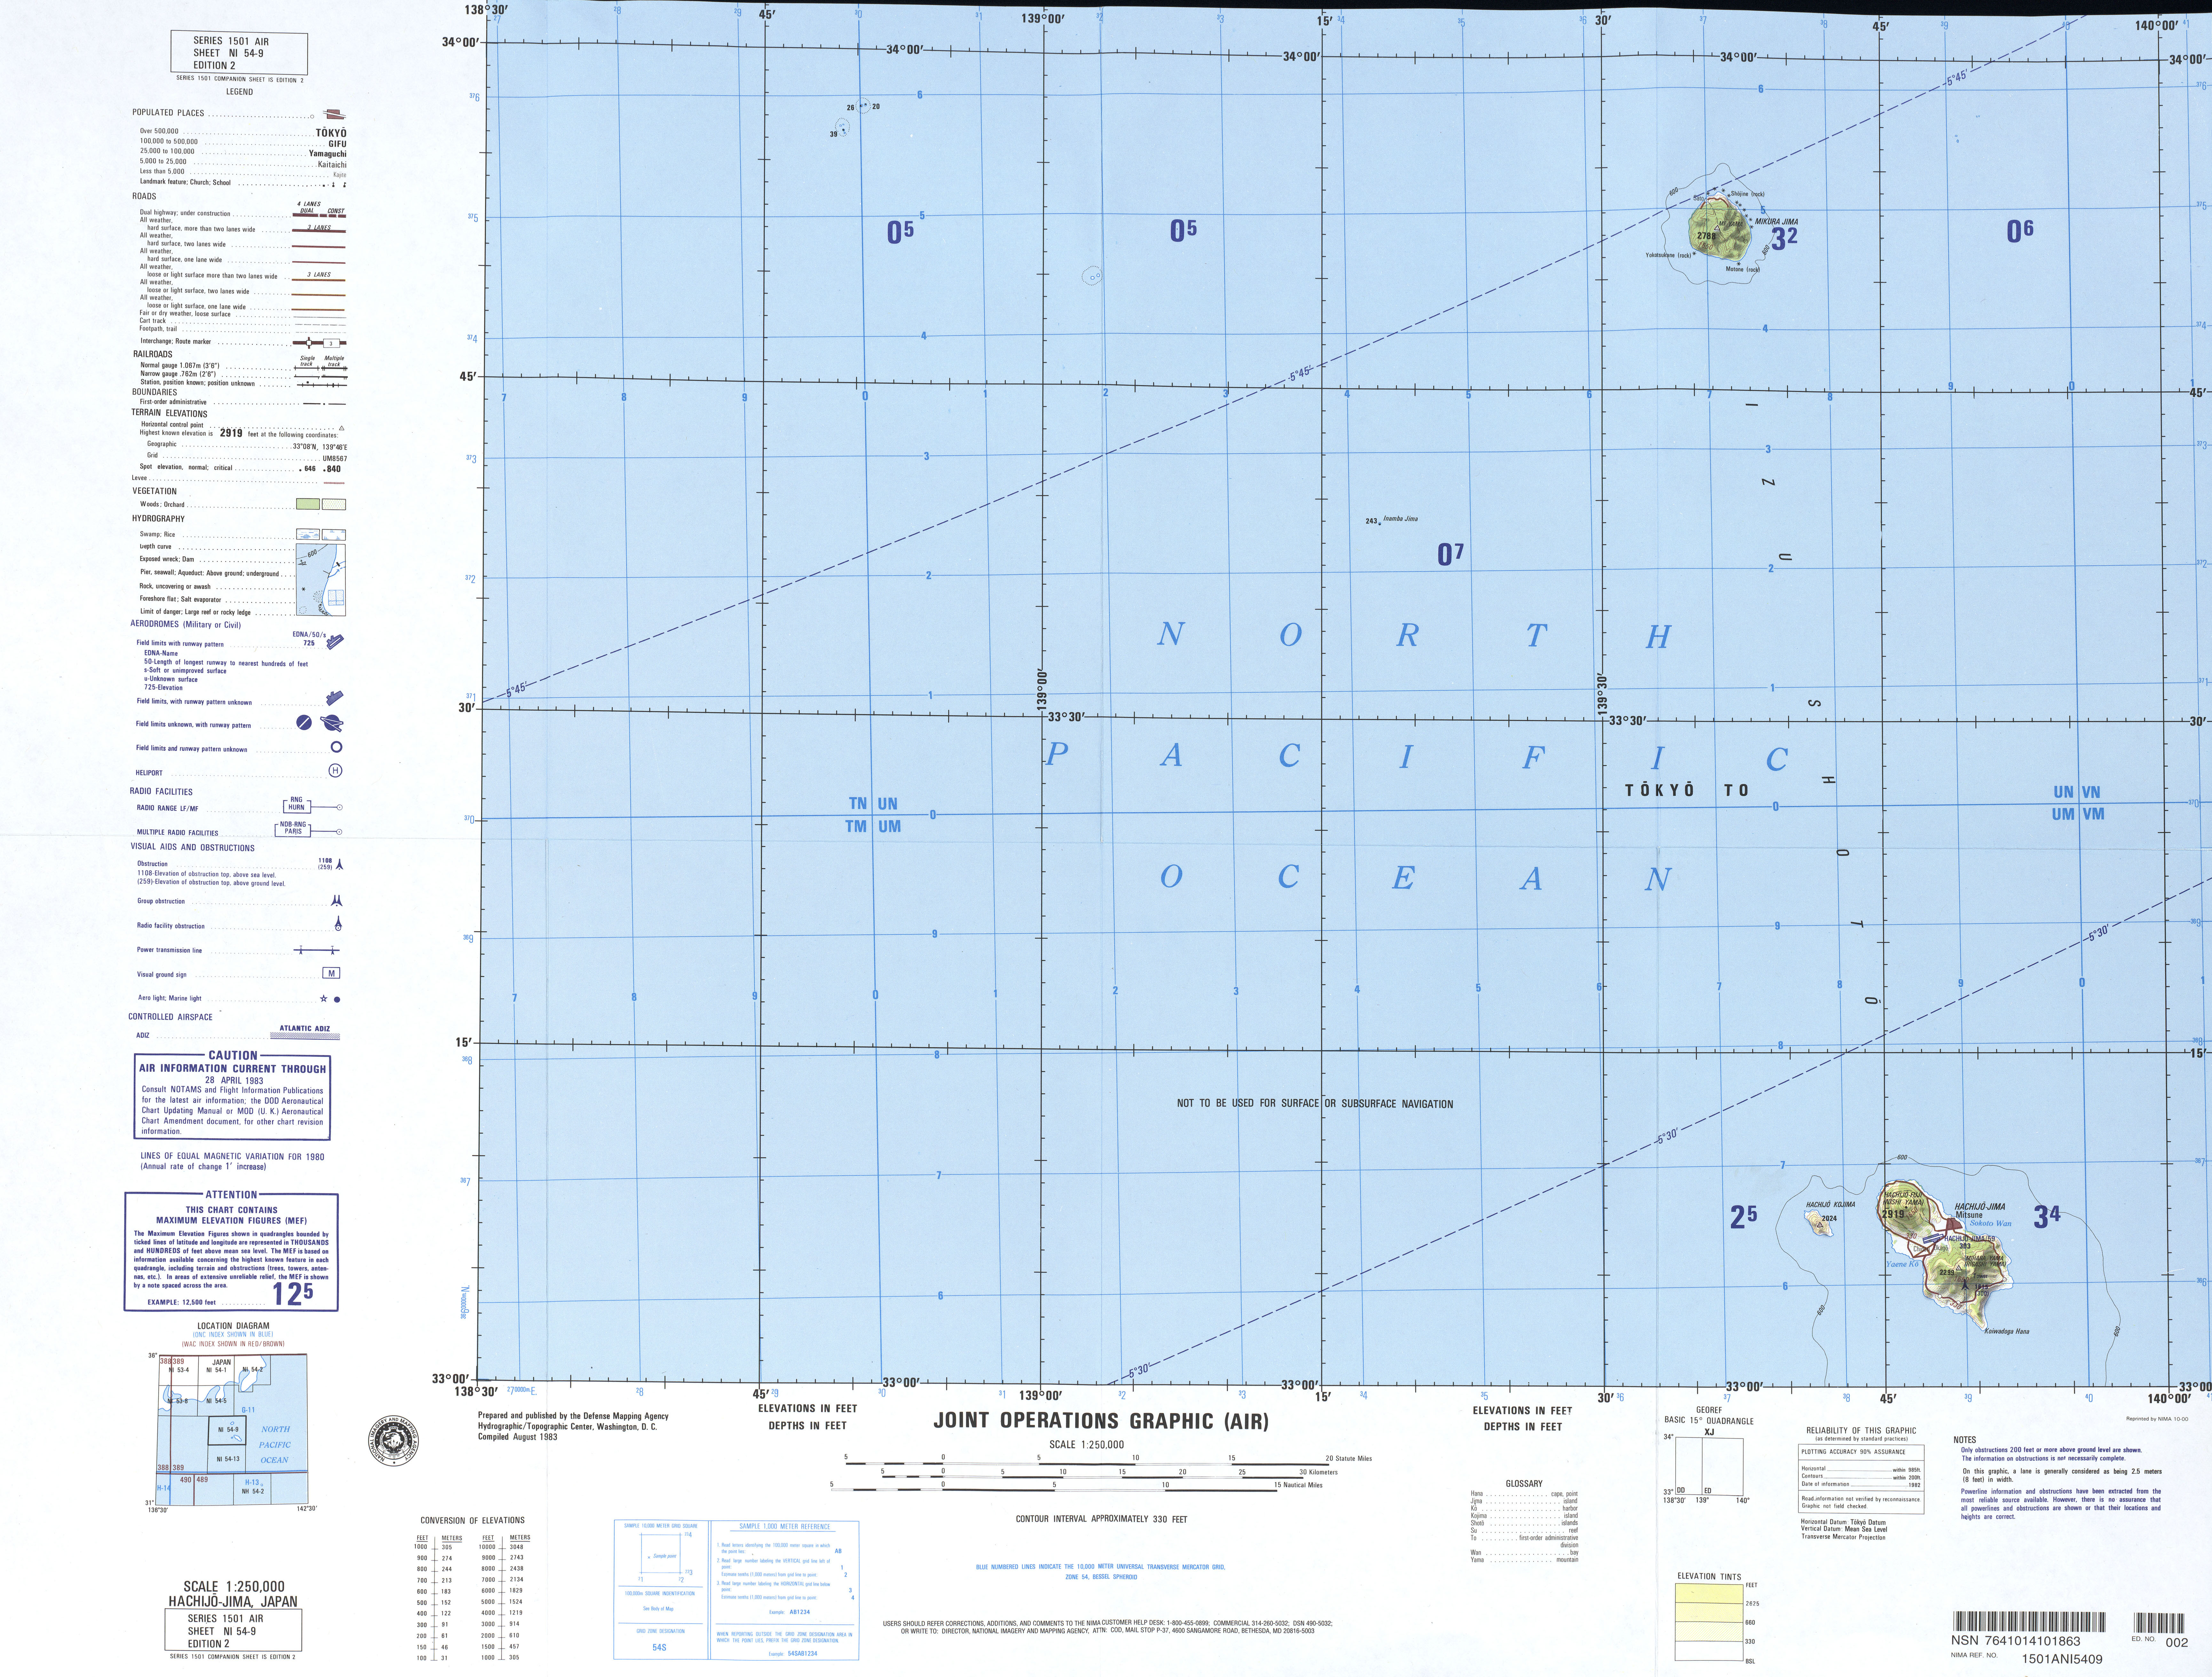 Japan Joint Operations Graphic - Perry-Castañeda Map Collection ...